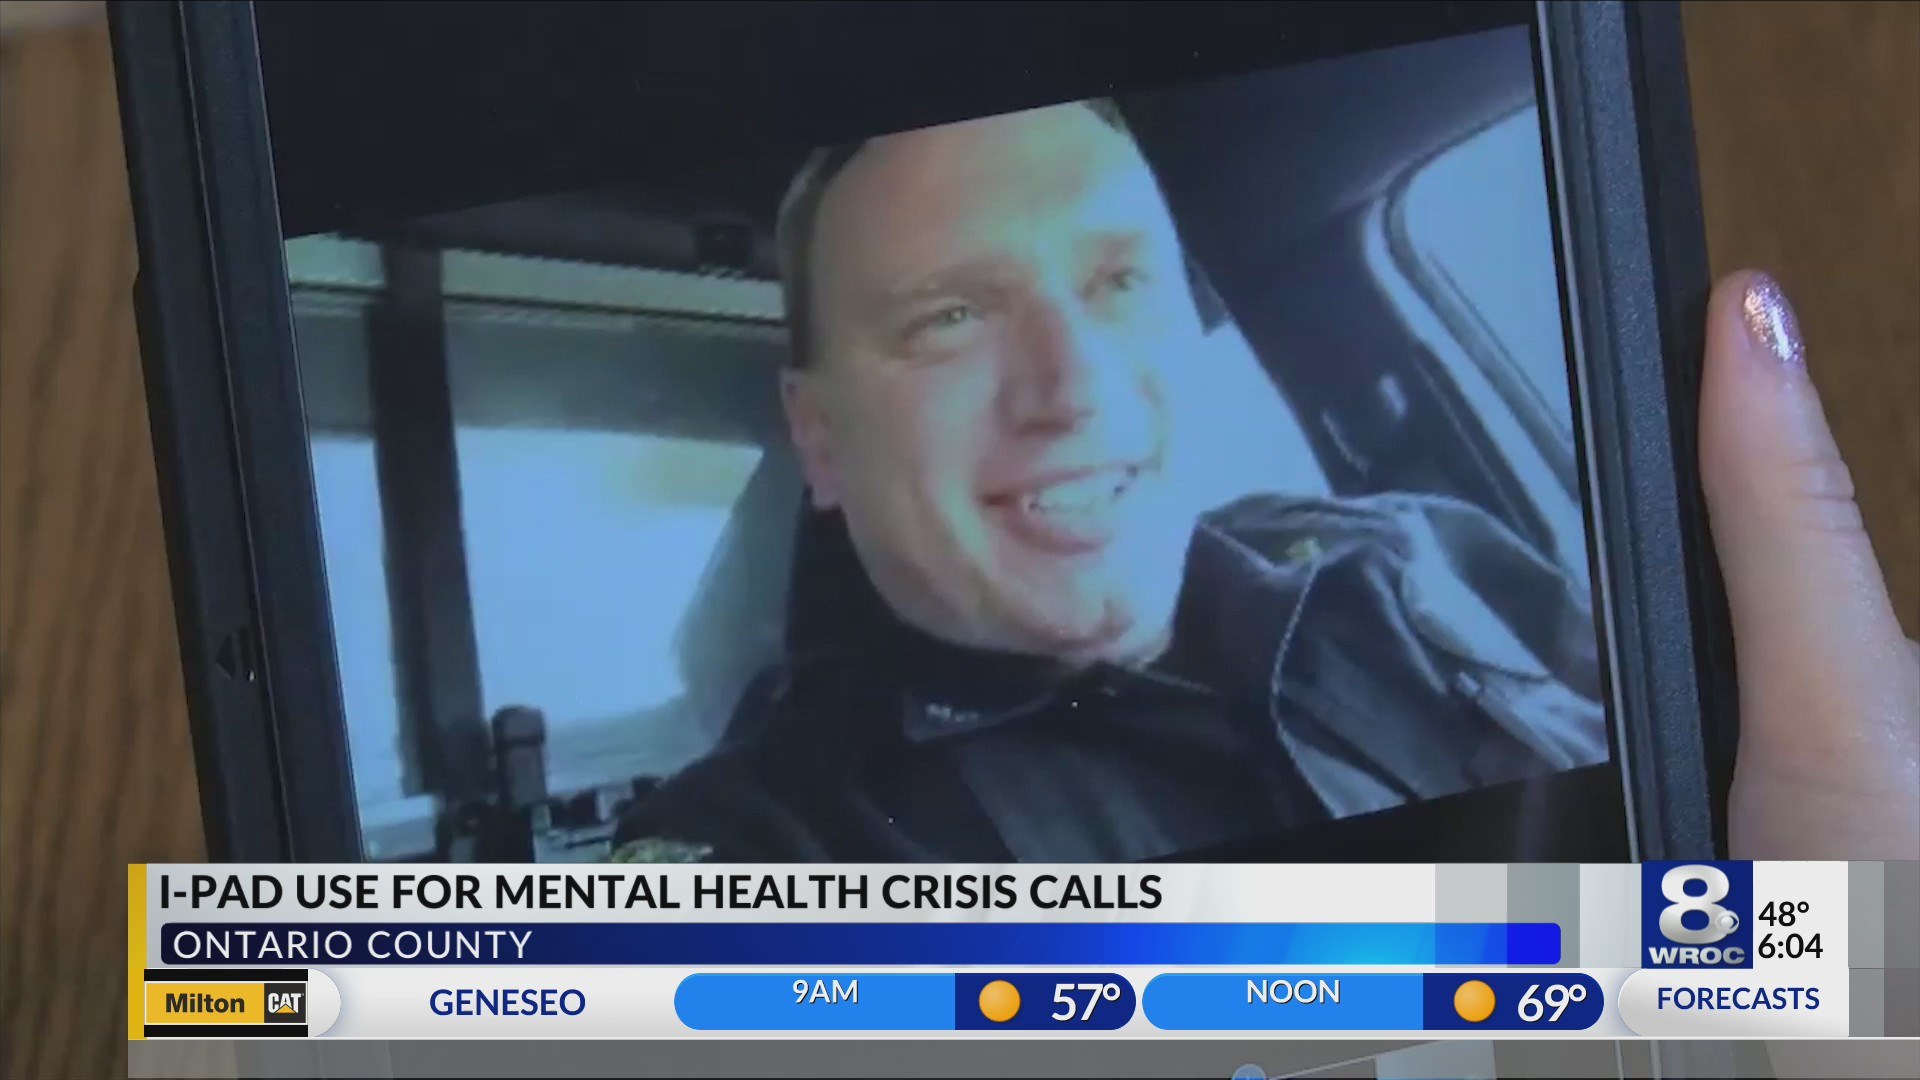 Deputies to use iPads when responding to mental health crisis calls in Ontario County